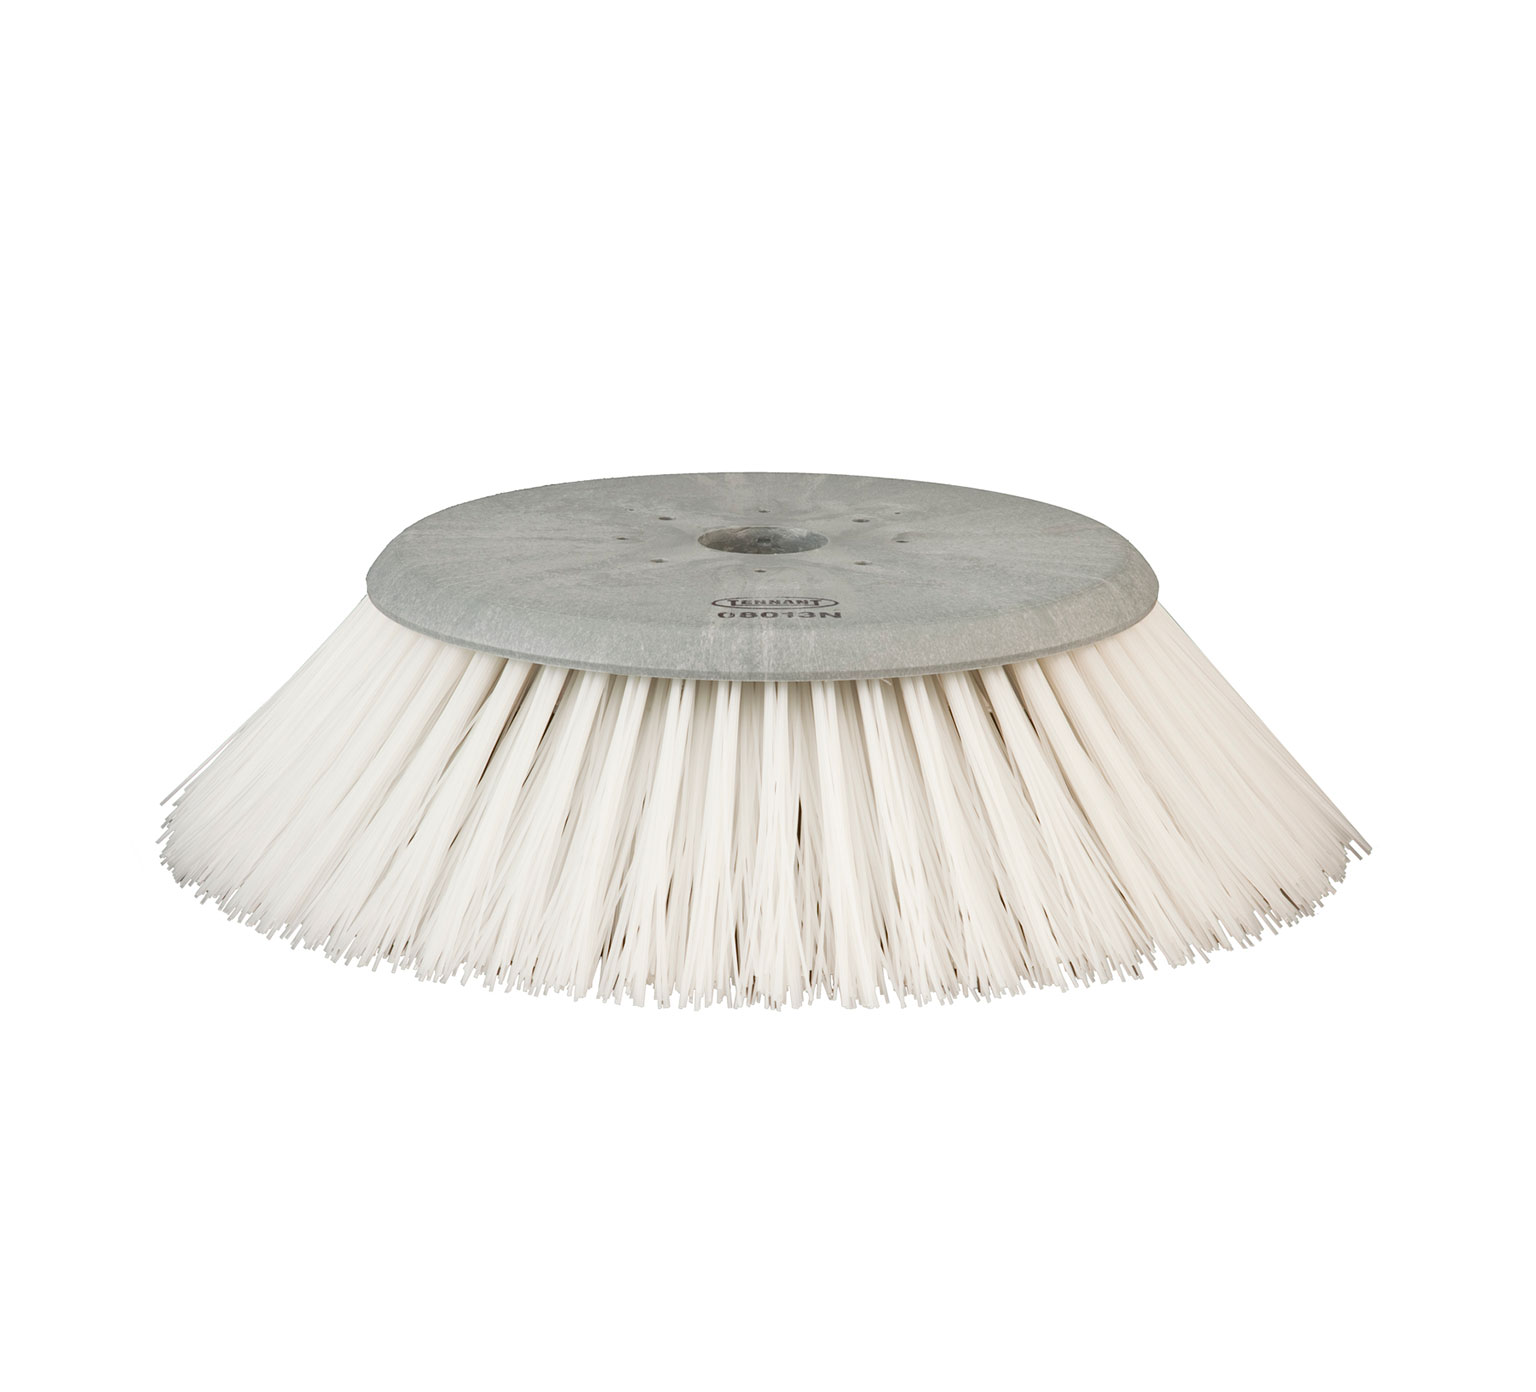 08013N Nylon Disk Sweep Brush – 23 in / 584 mm alt 1